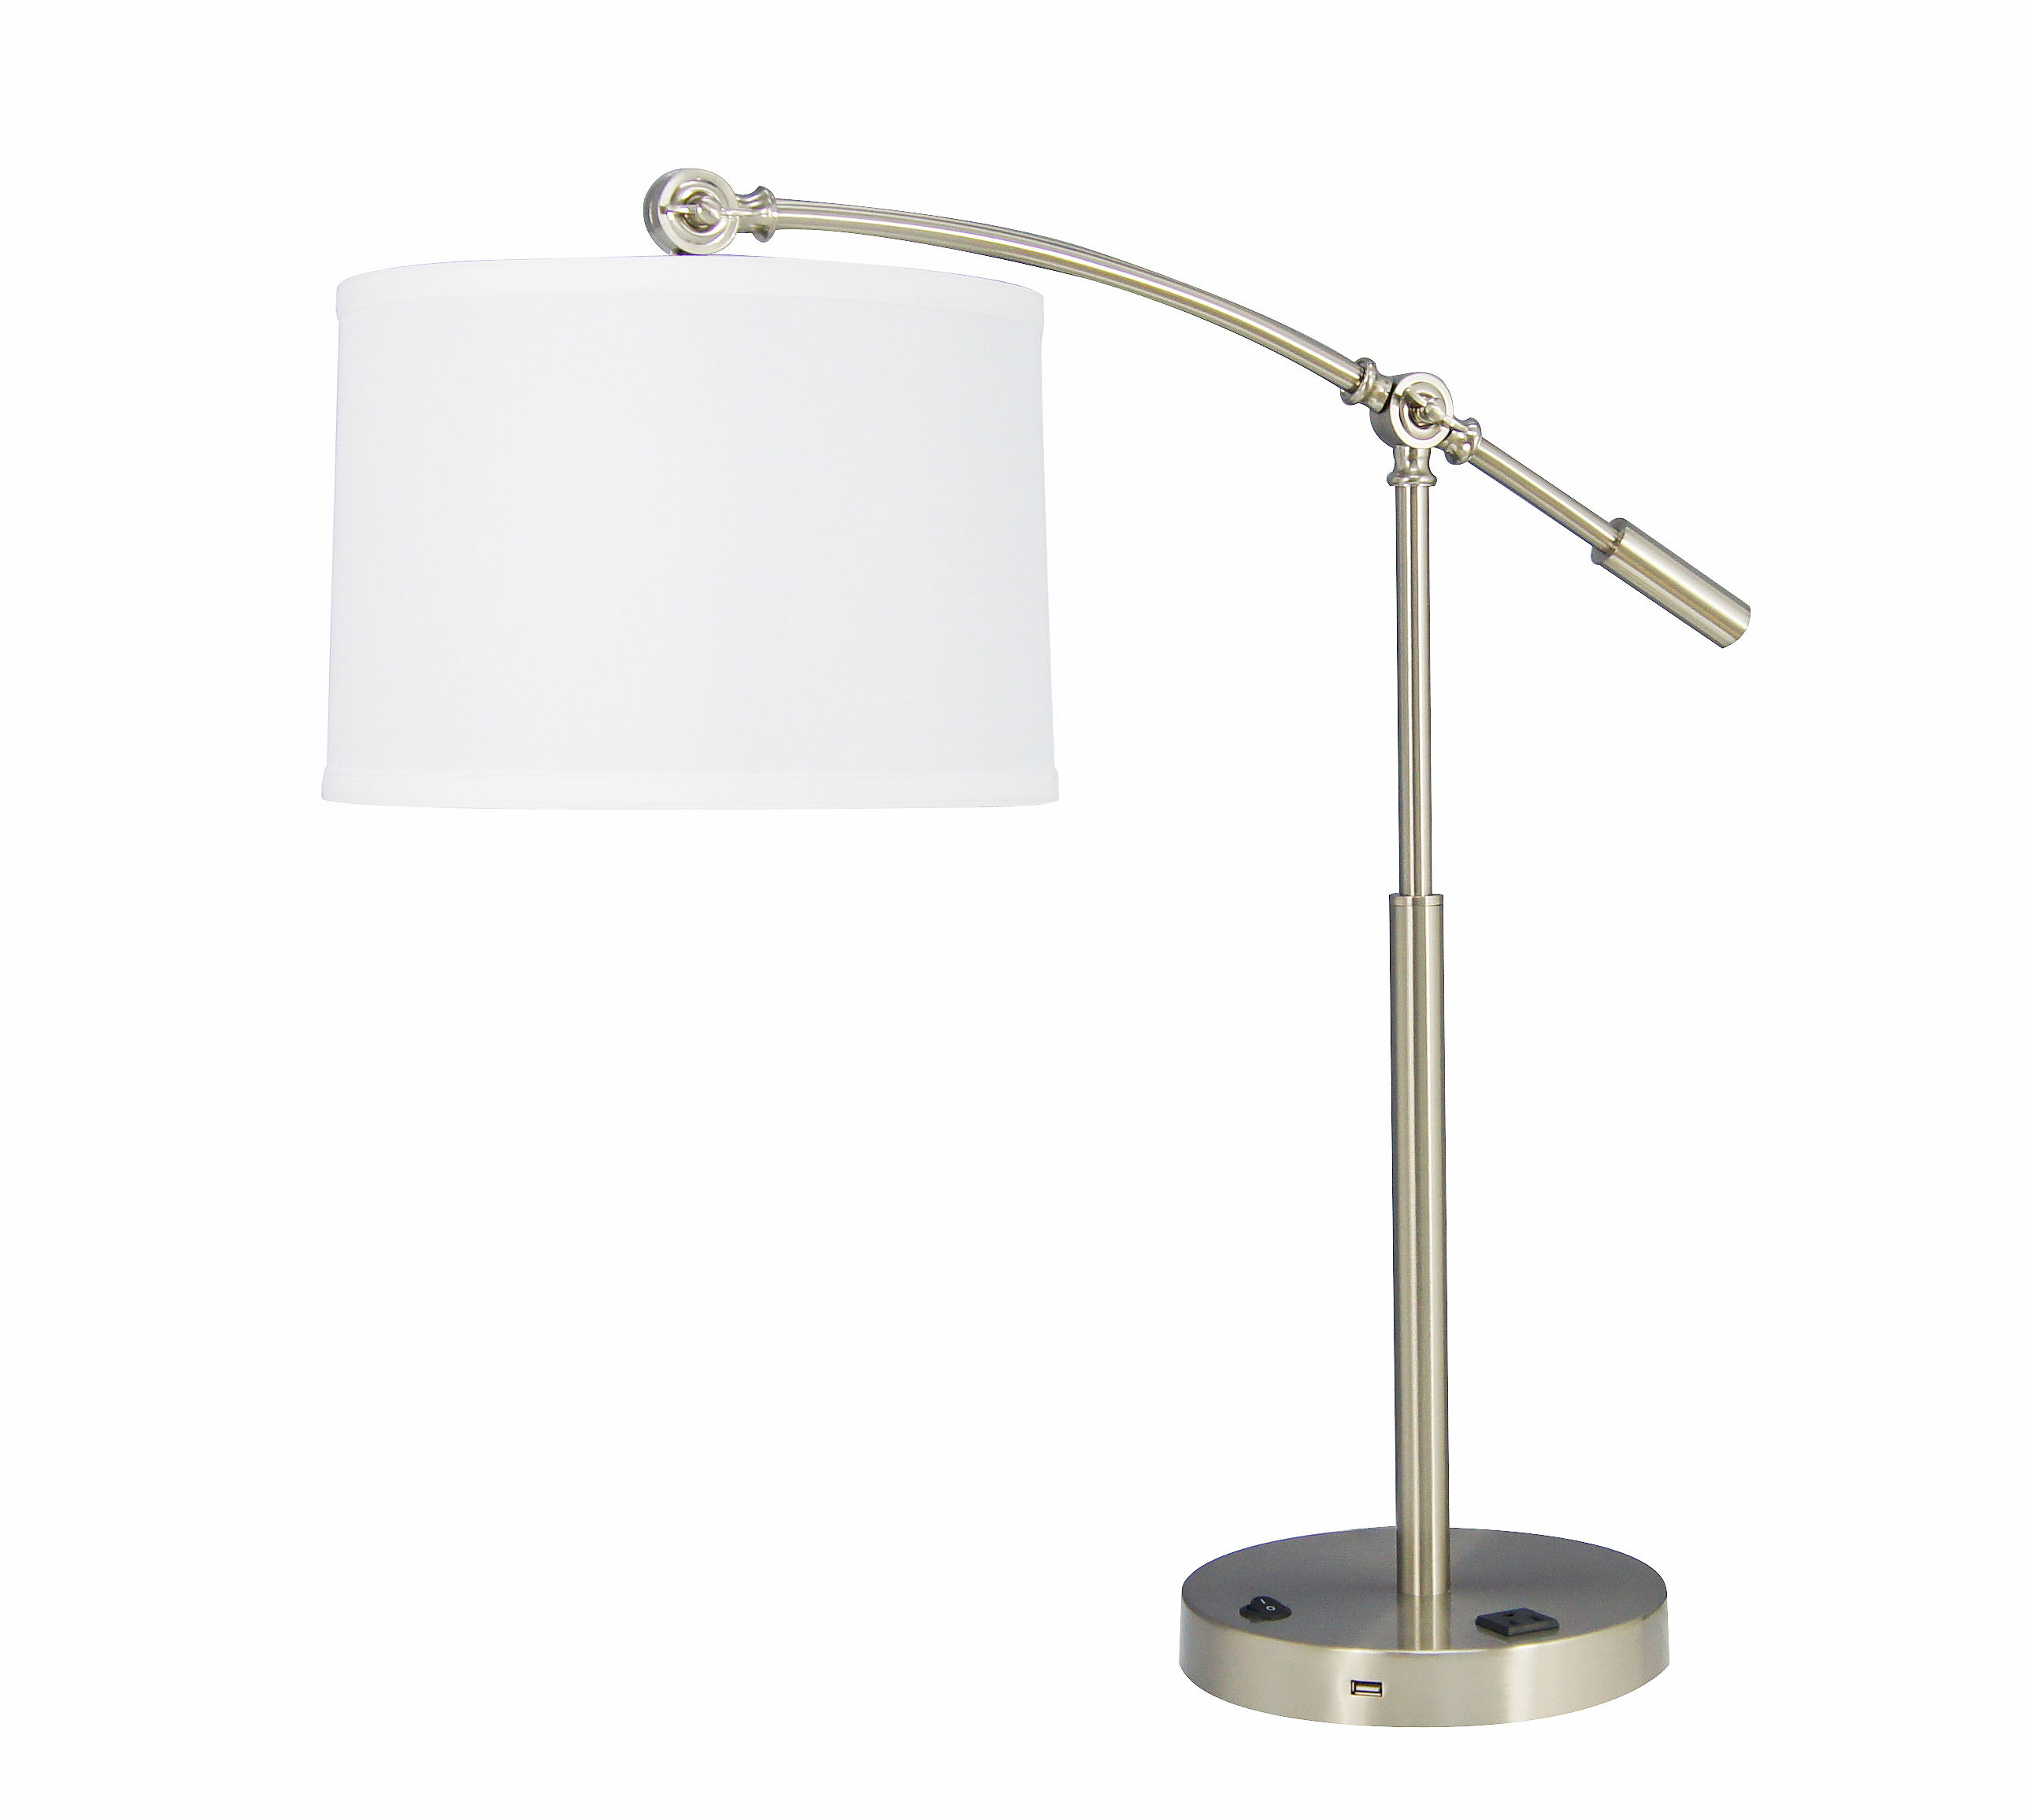 Modern Iron Bedside Lamp Adjustable Arc Hotel Table Lamp with White Round Fabric Shade and USB